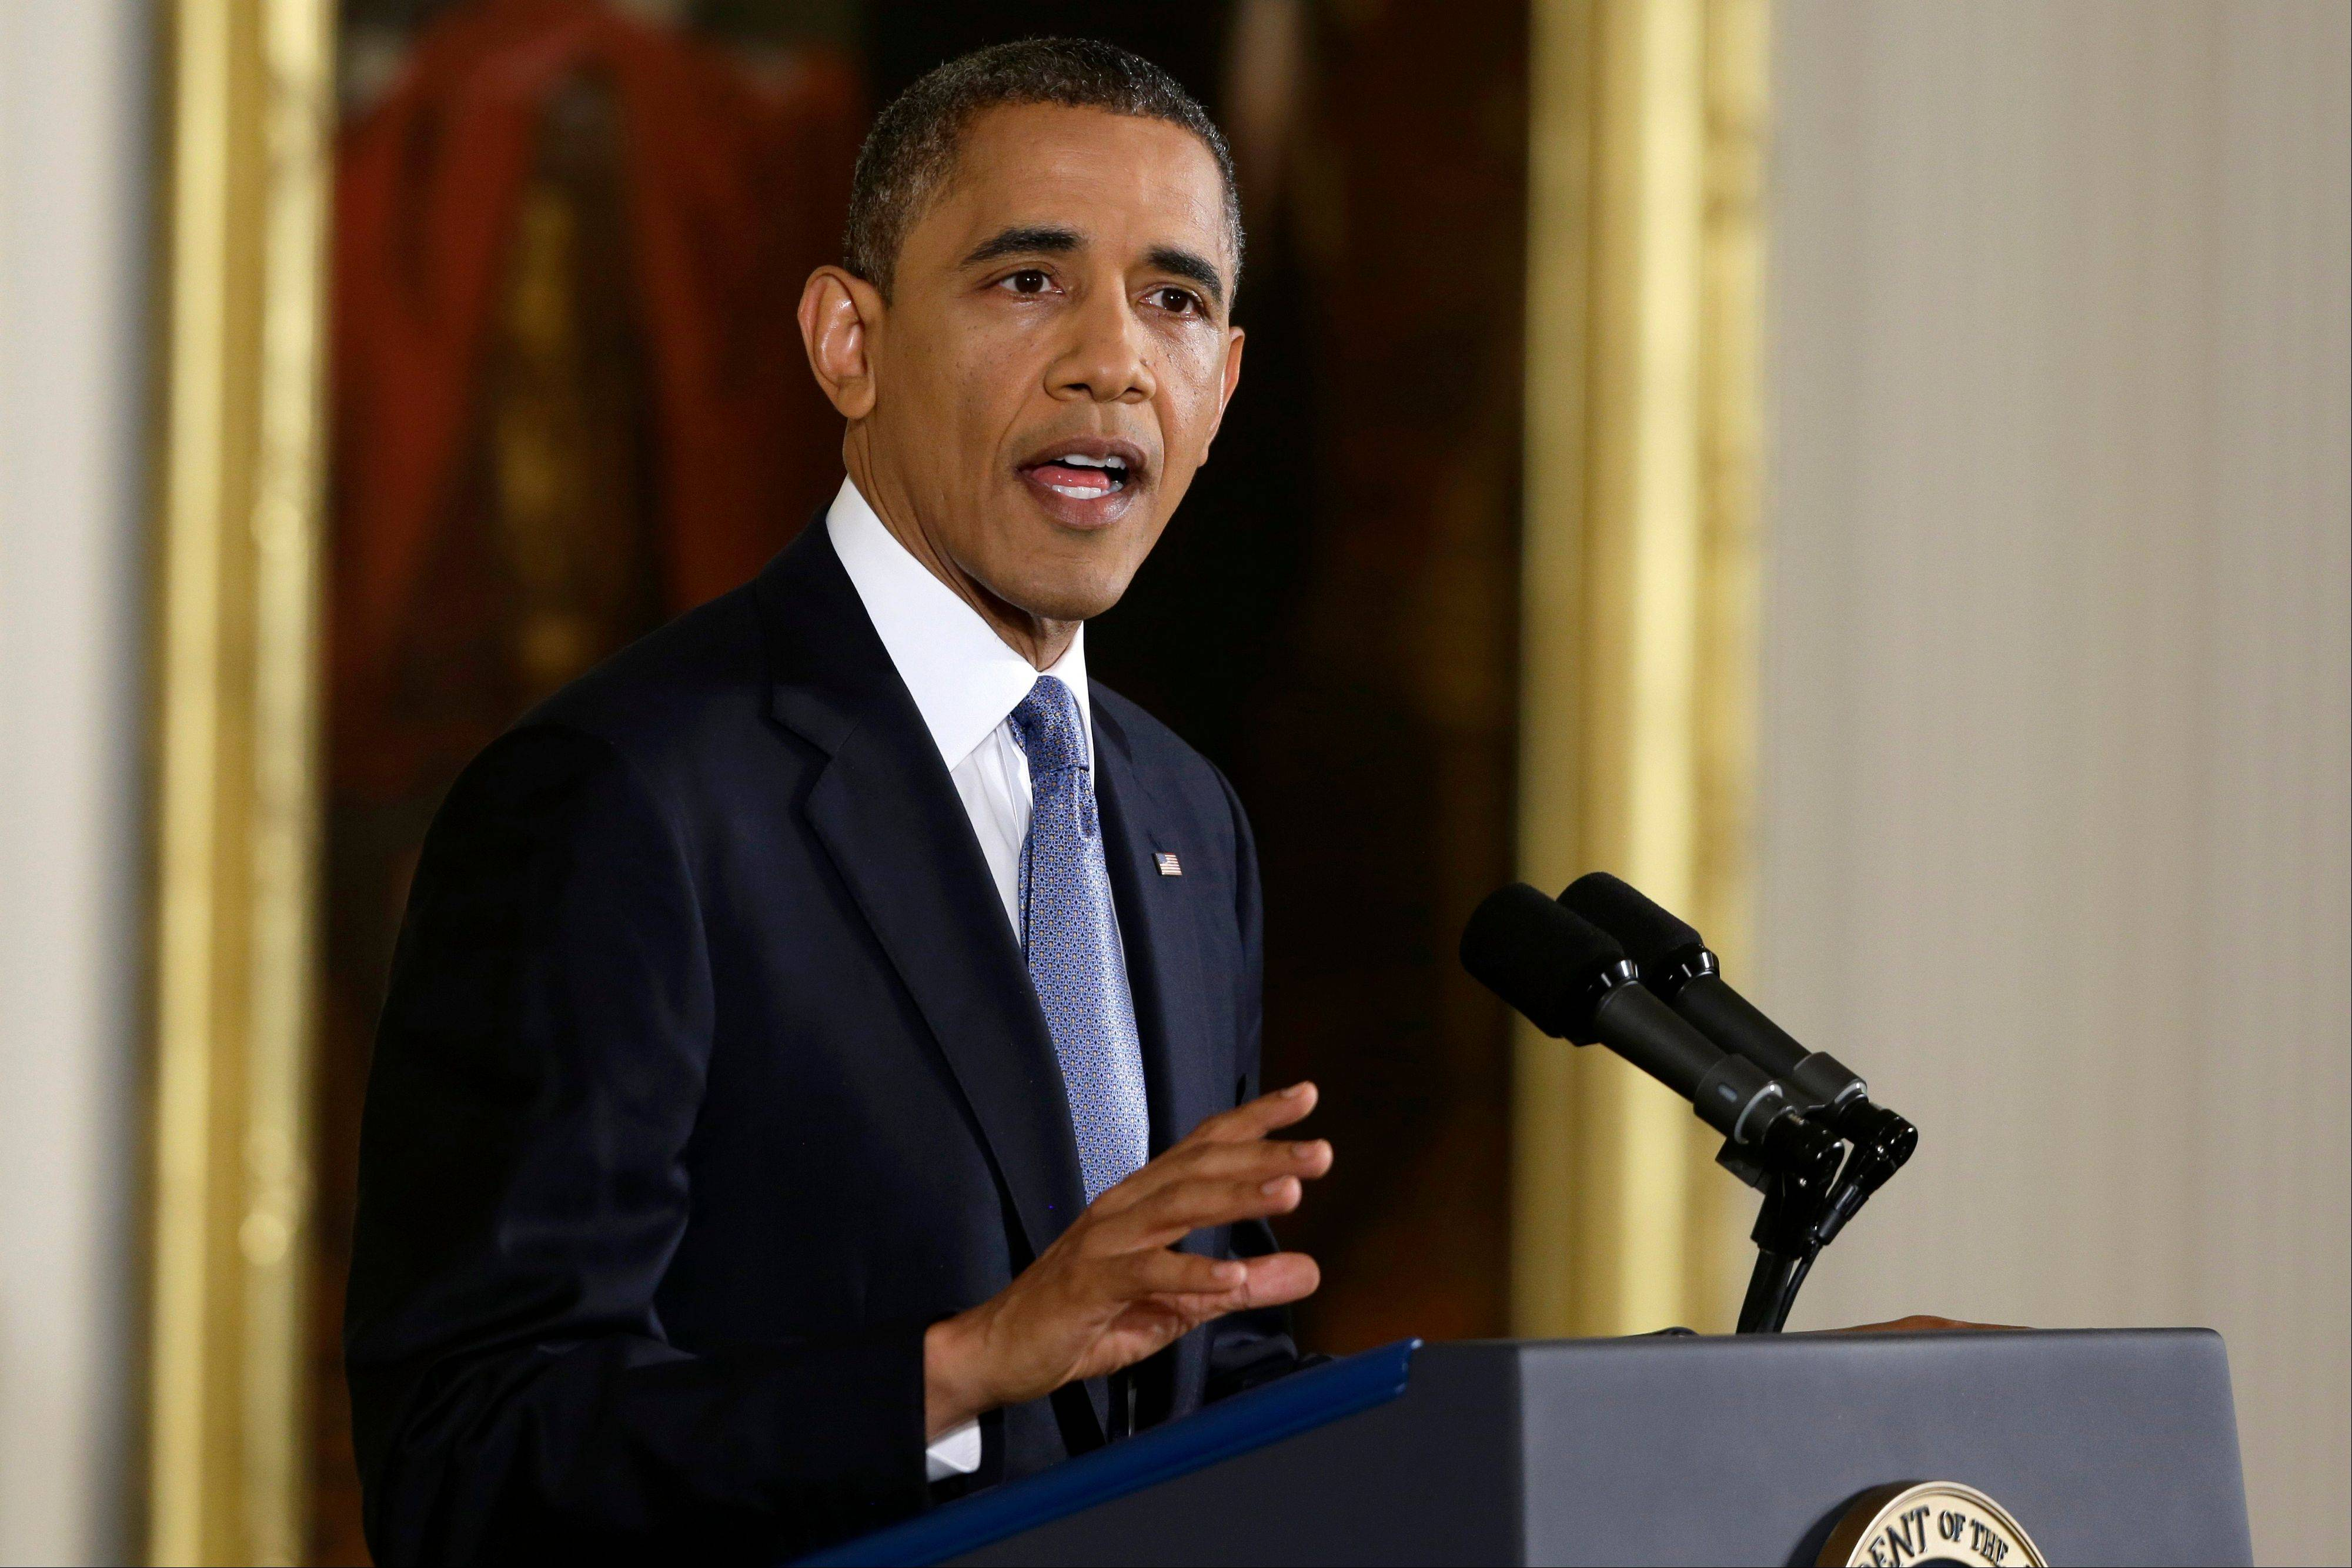 In his first press confernce since his re-election, President Barack Obama on Wednesday said voters sent a �very clear message� on Election Day that they want both parties work together to cut the budget deficit with a mix of tax increases for the wealthy and cuts in spending.